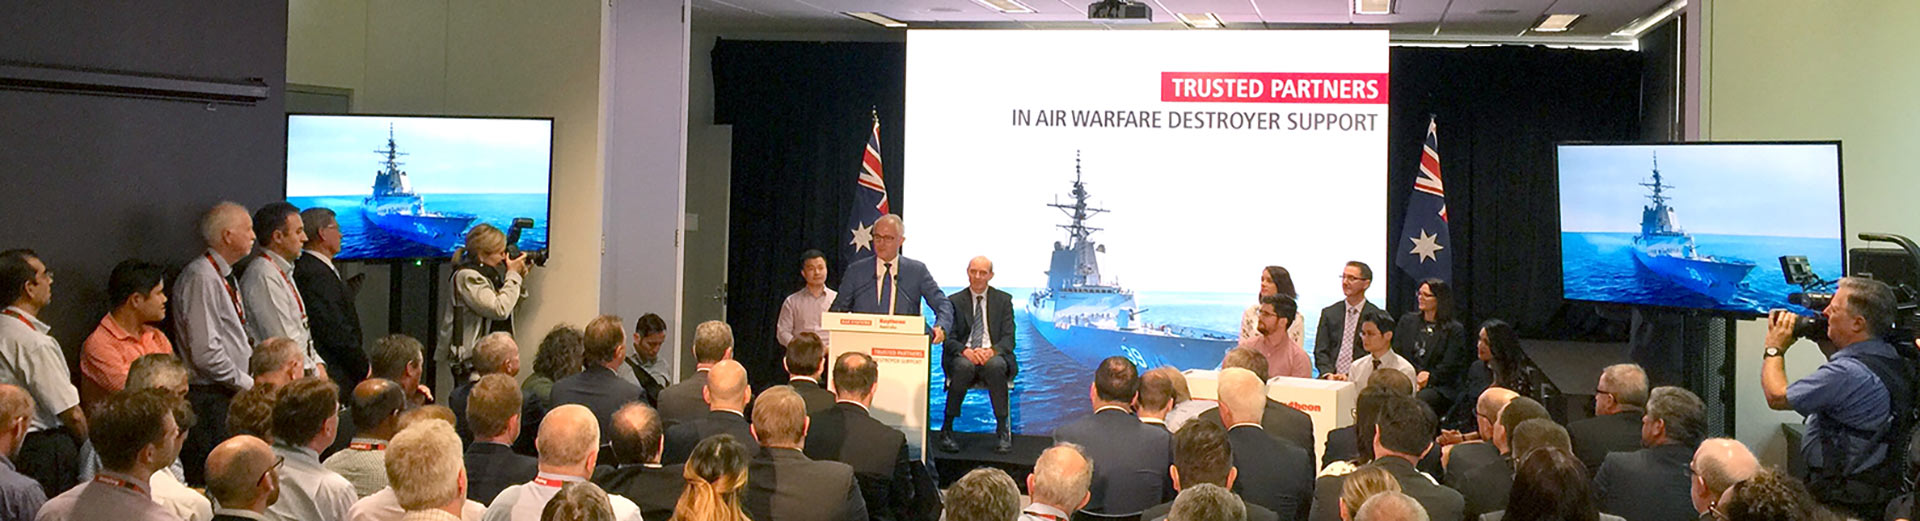 TRUSTED PARTNERS IN AIR WARFARE DESTROYER SUPPORT